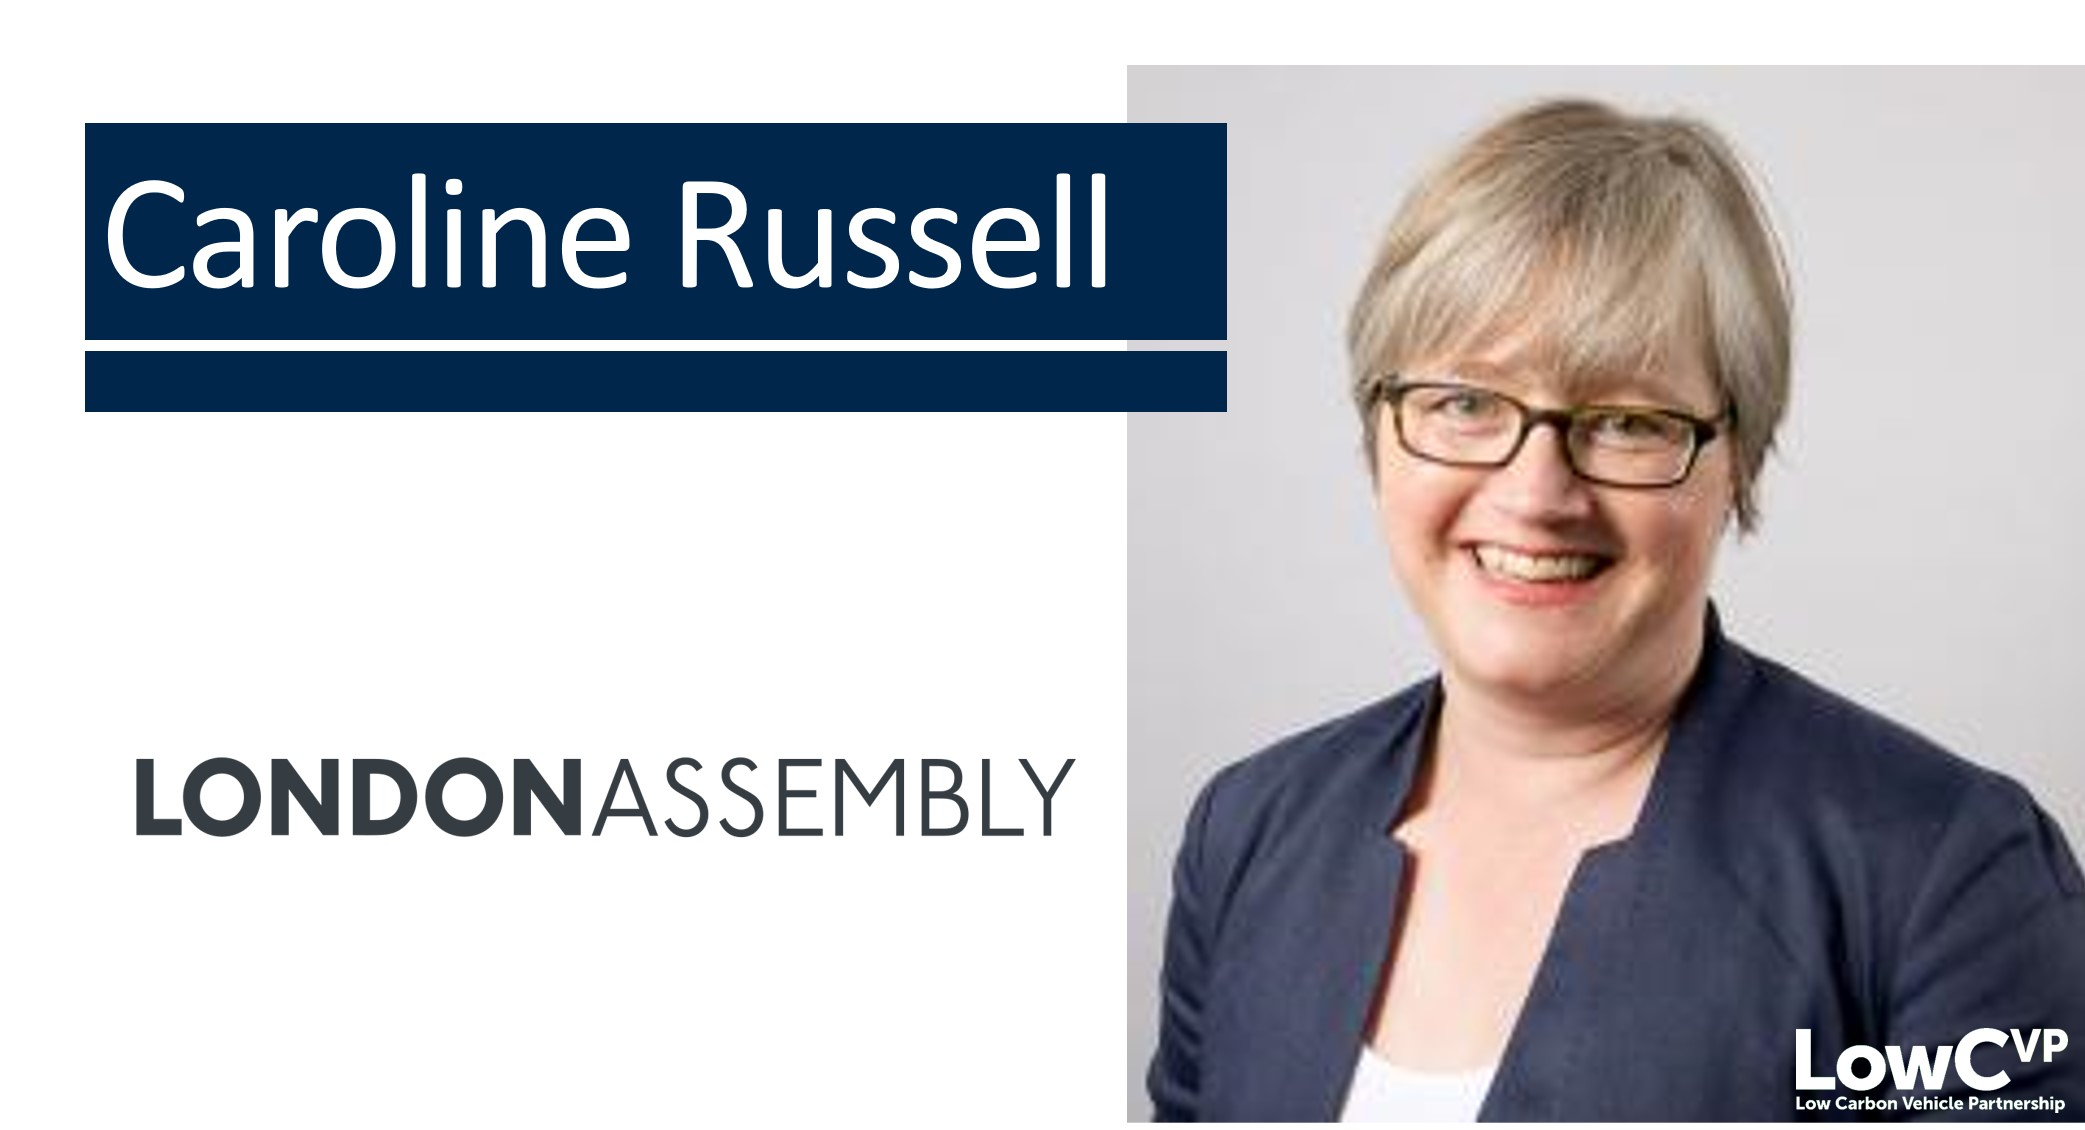 Carroline Russell - London Assembly Member, Green Party Transport Spokesperson